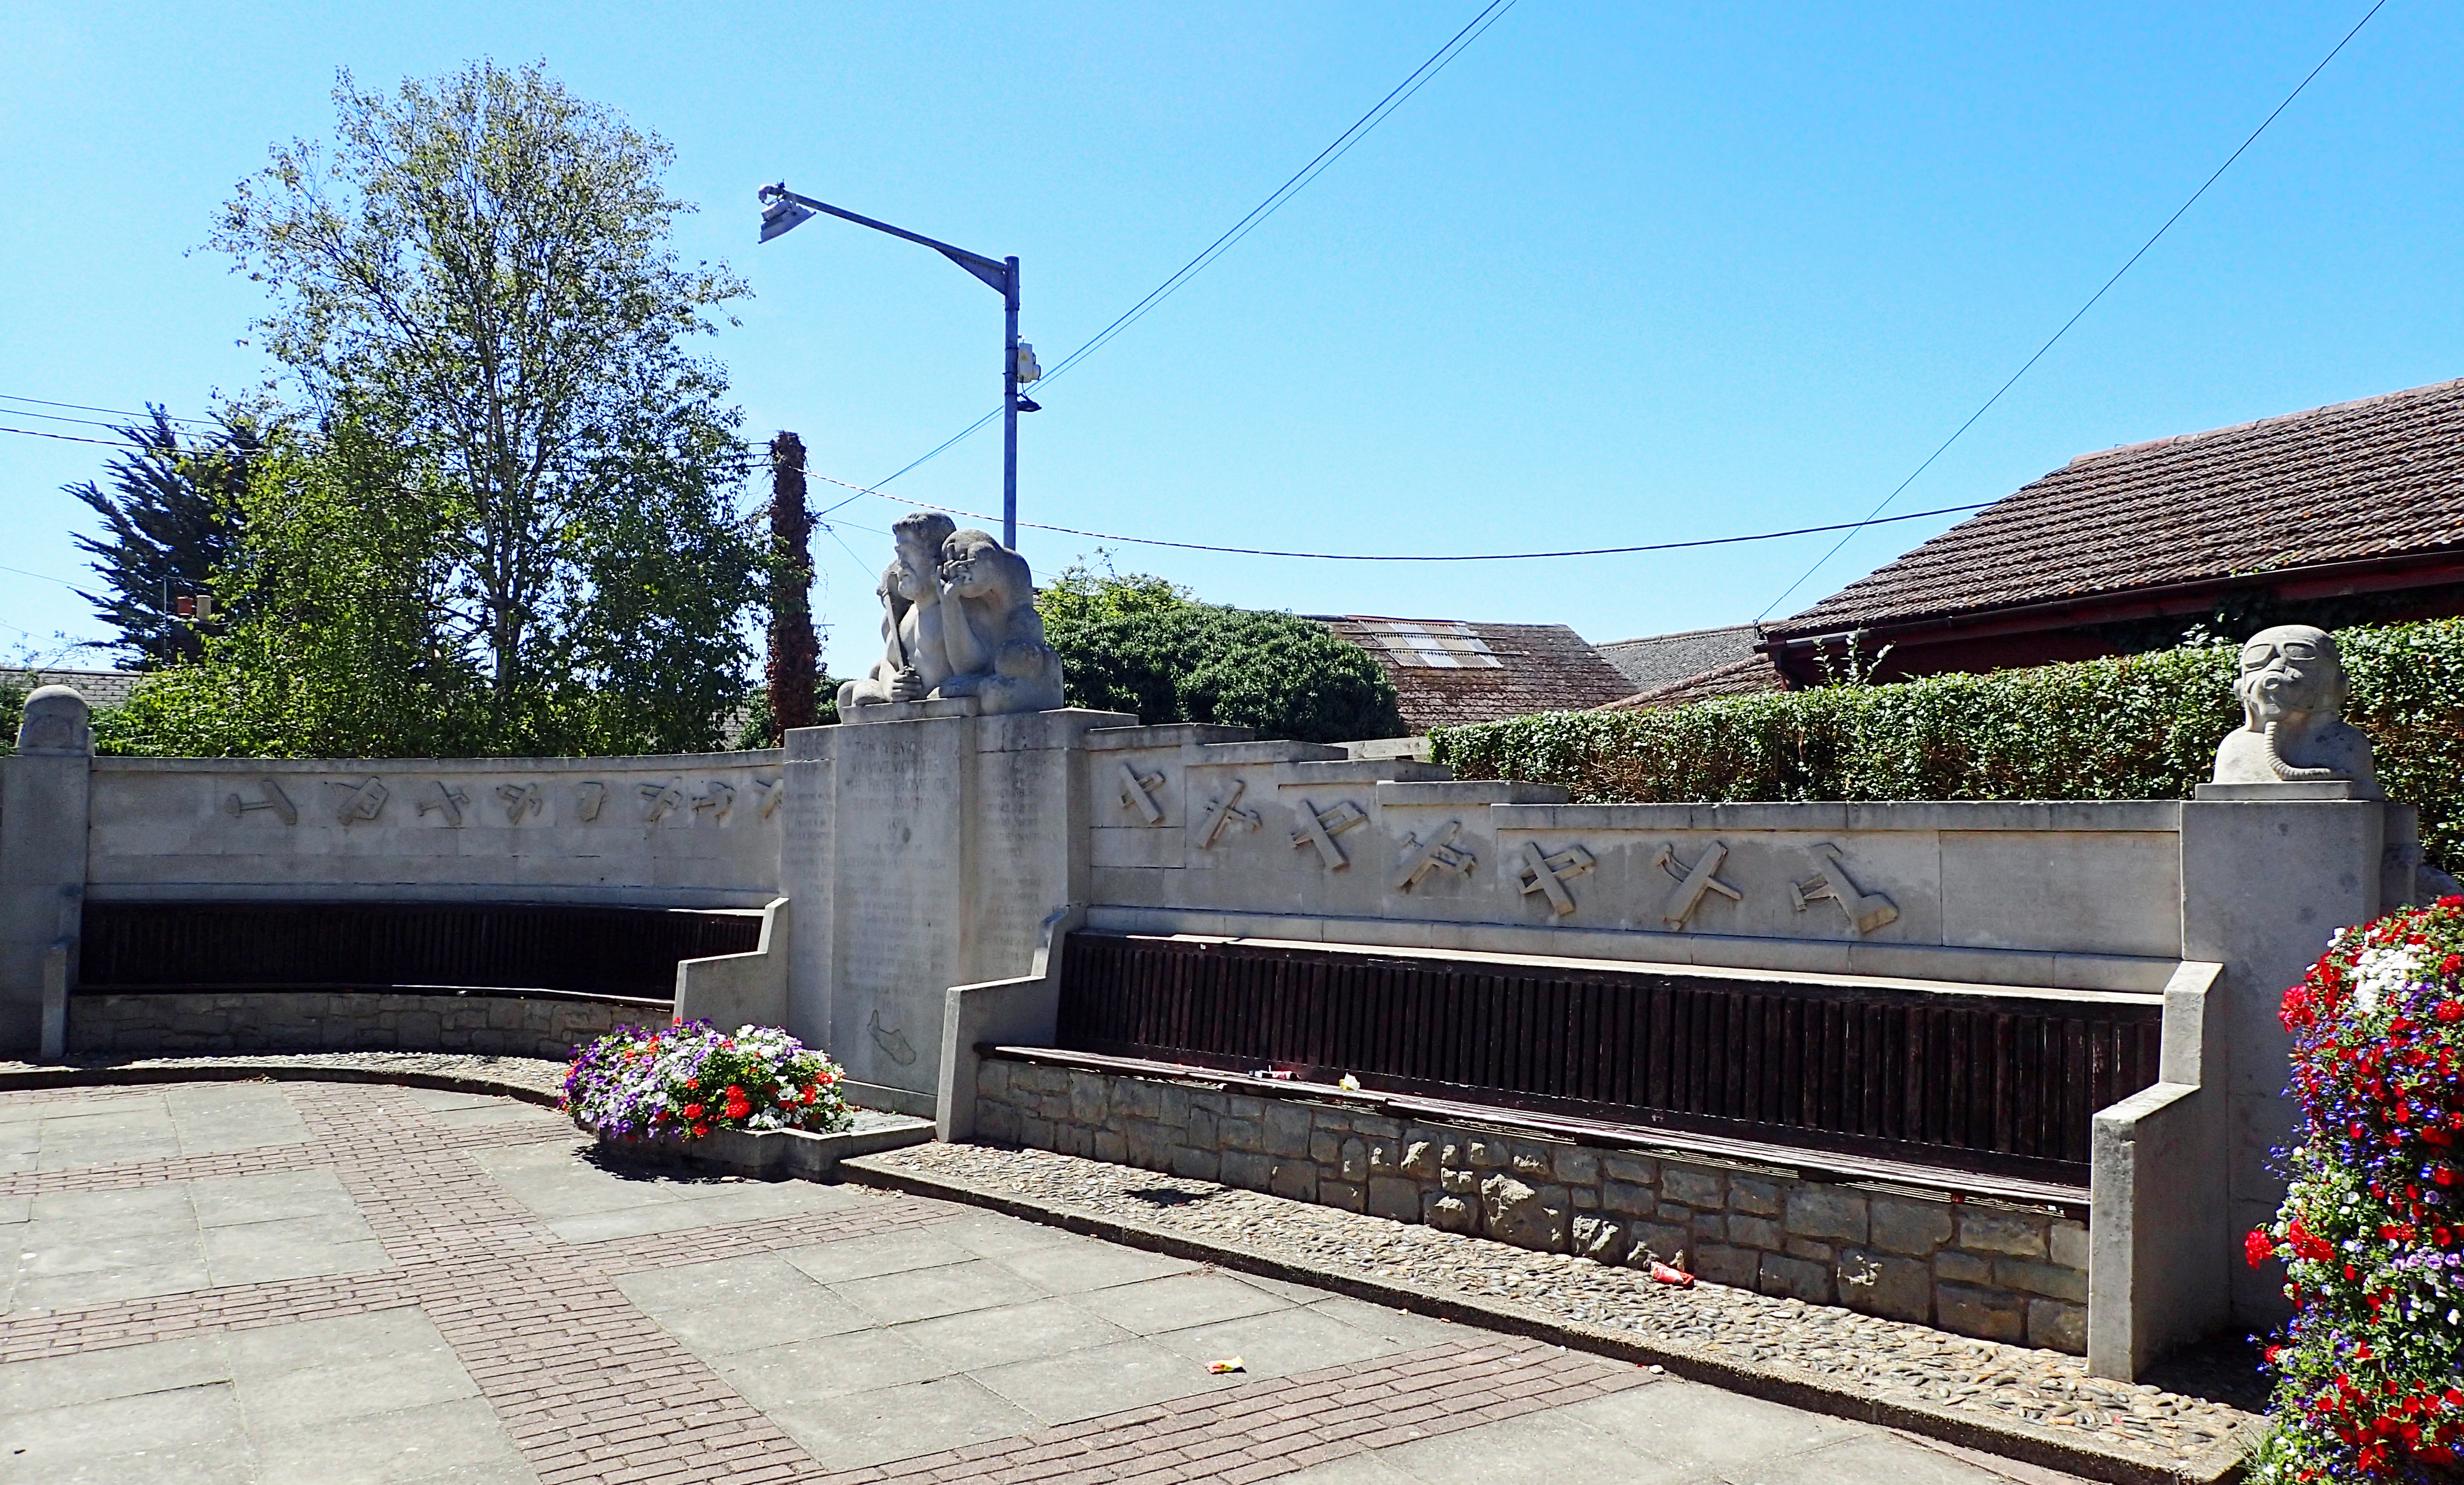 The small village of Eastchurch now has a Memorial to the Home of Aviation